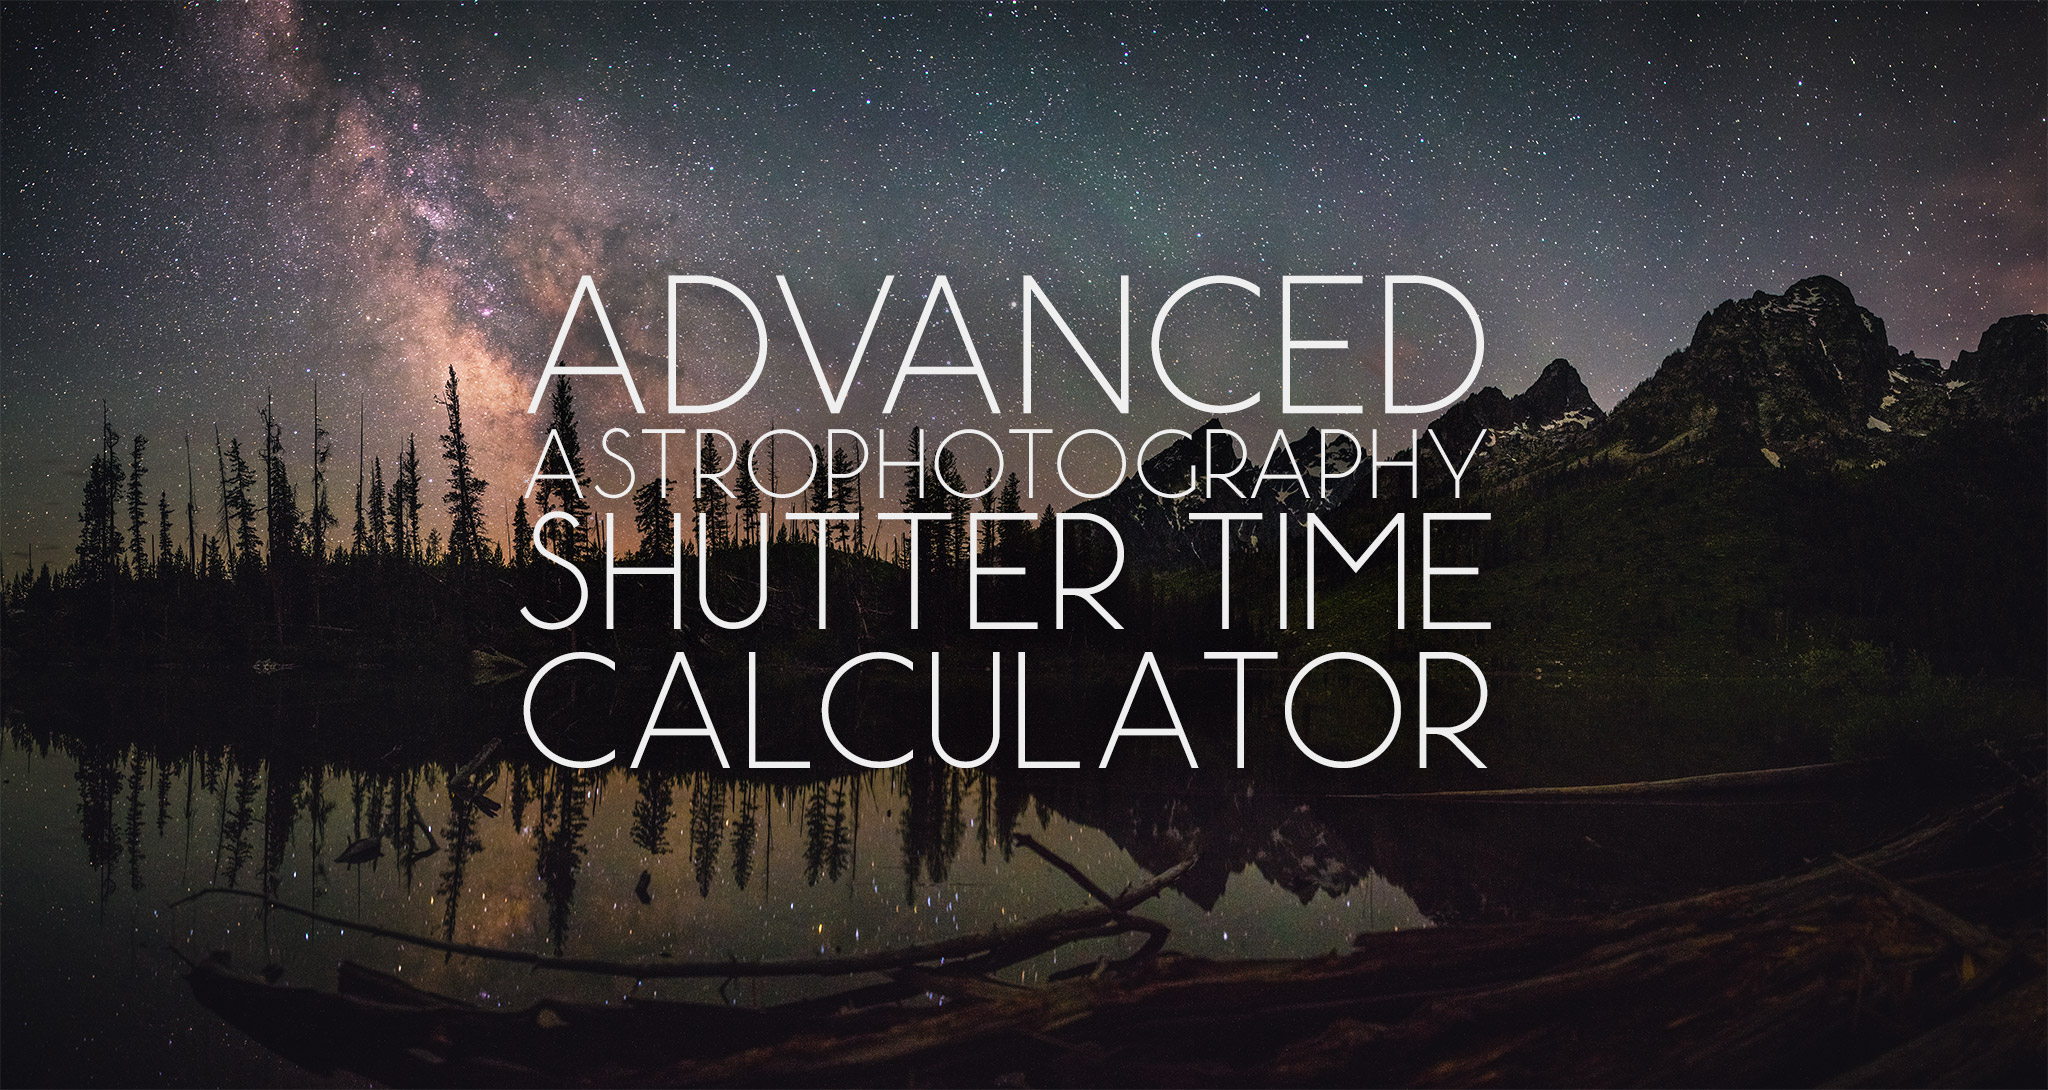 Advanced Astrophotography Shutter Time Calculator